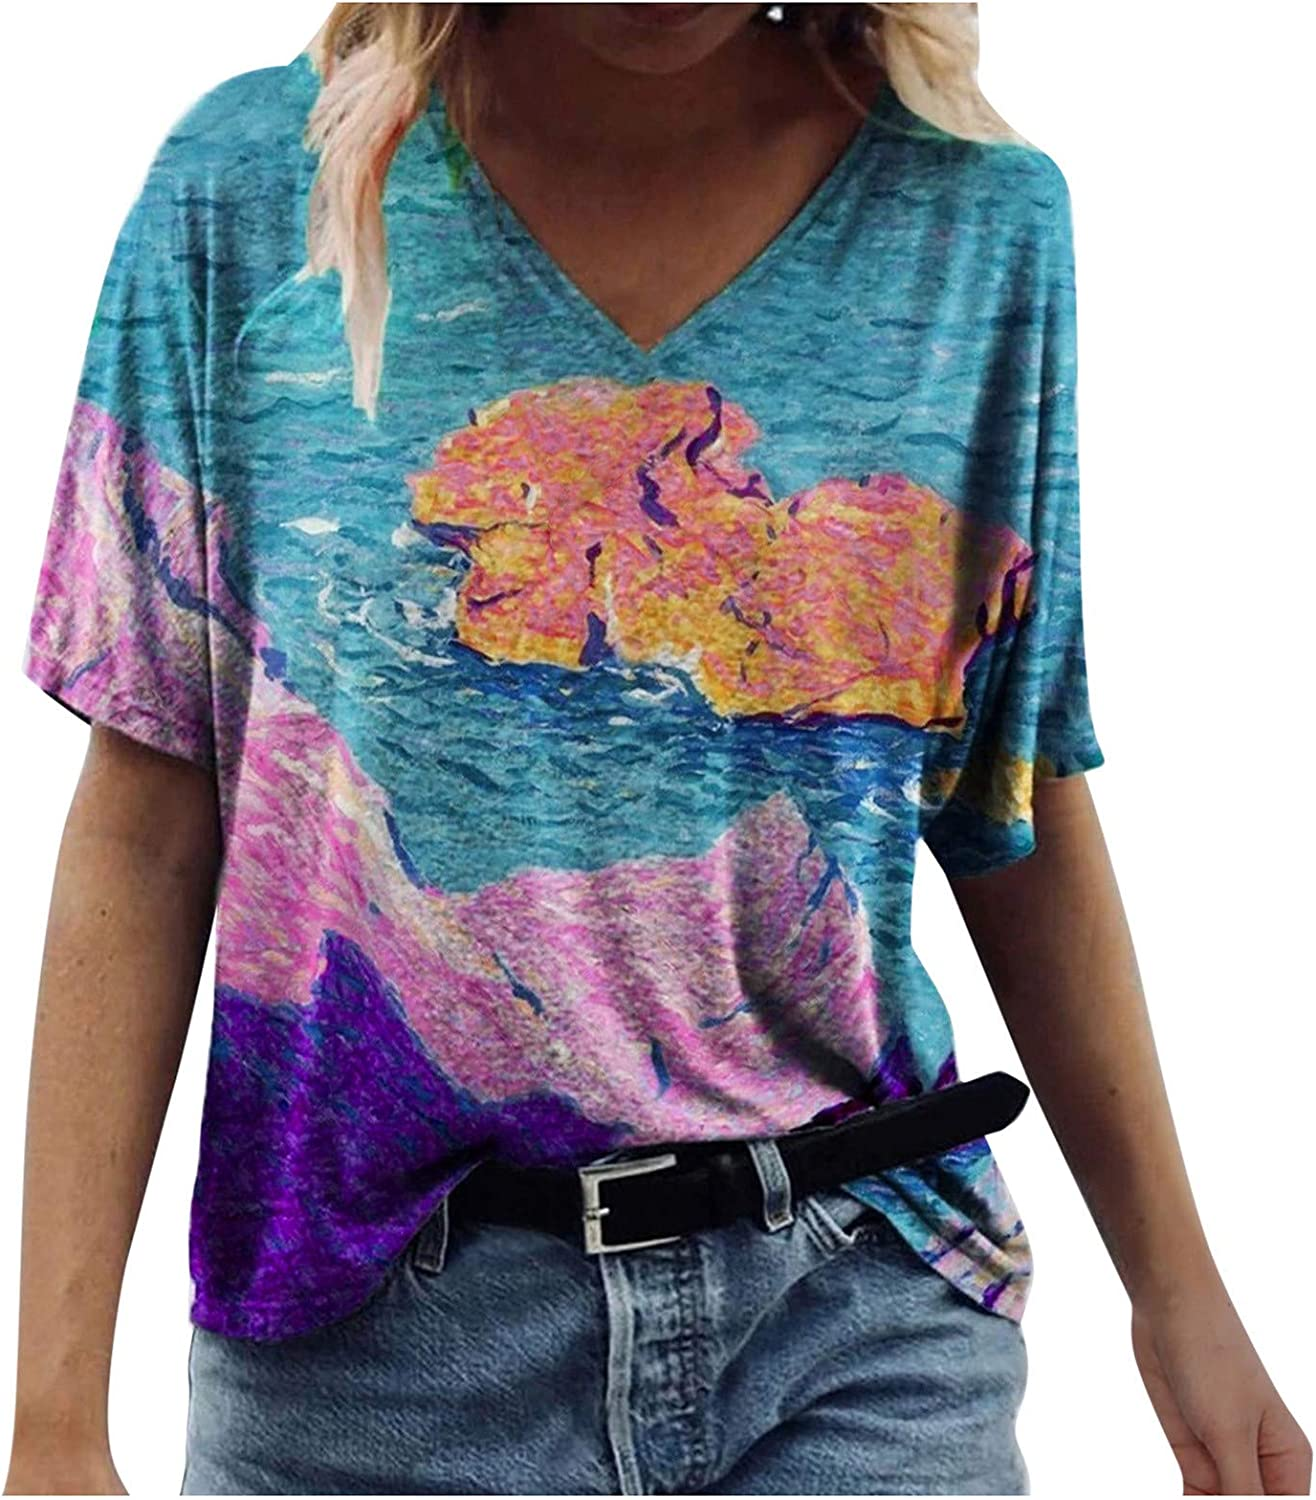 Tops for Women, Casual Summer T Shirts Vintage Boho Graphic Tees Basic Comfy Loose Fit Tunics Short Sleeve V Neck Blouse